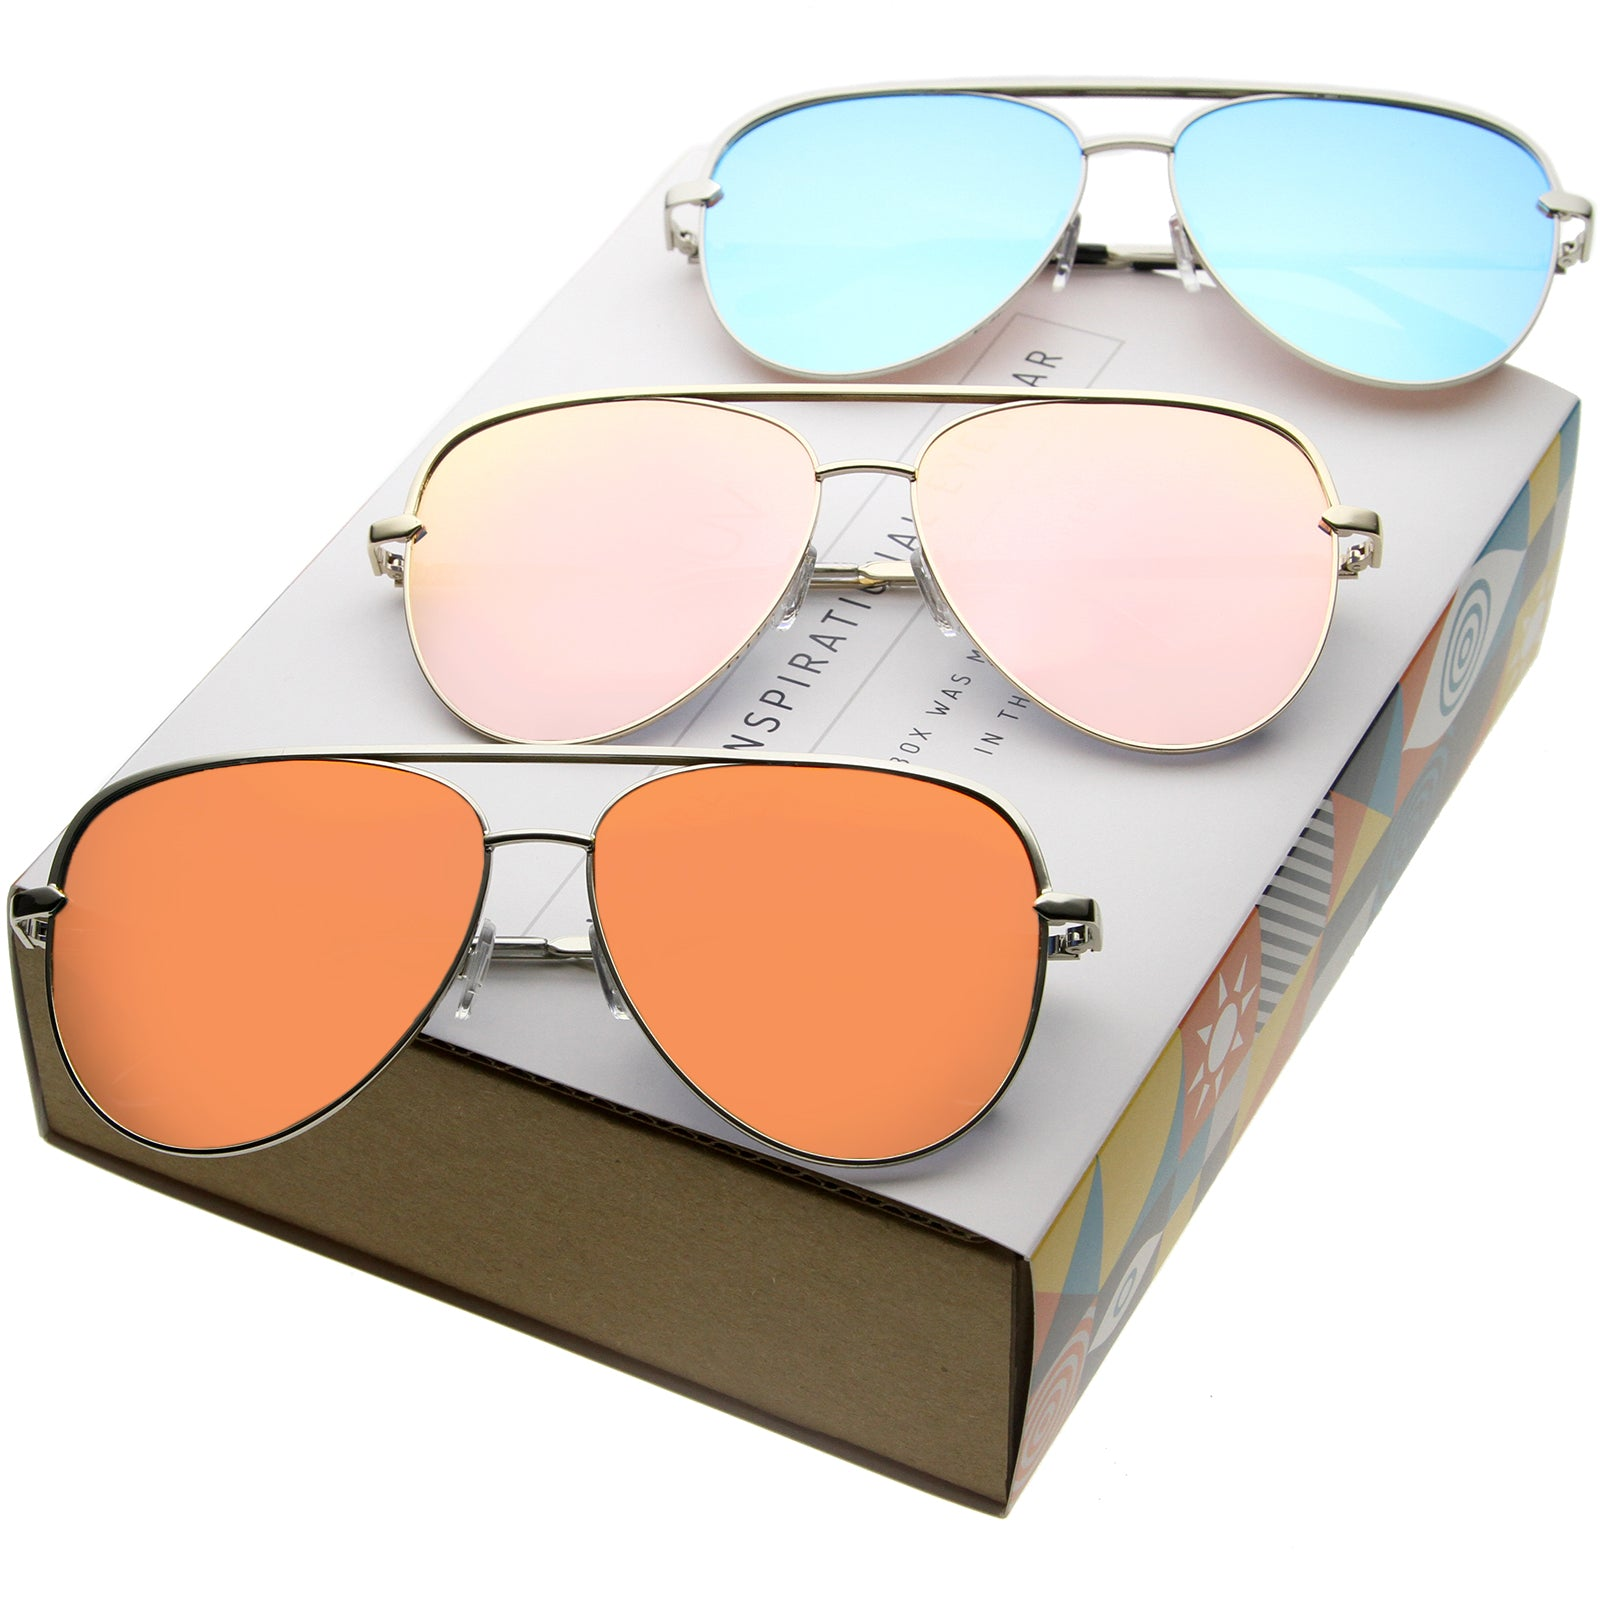 bc677602d578 ... Modern Flat Mirrored Lens Aviator Sunglasses C361  Promo Box  · Mixed  Promo Box